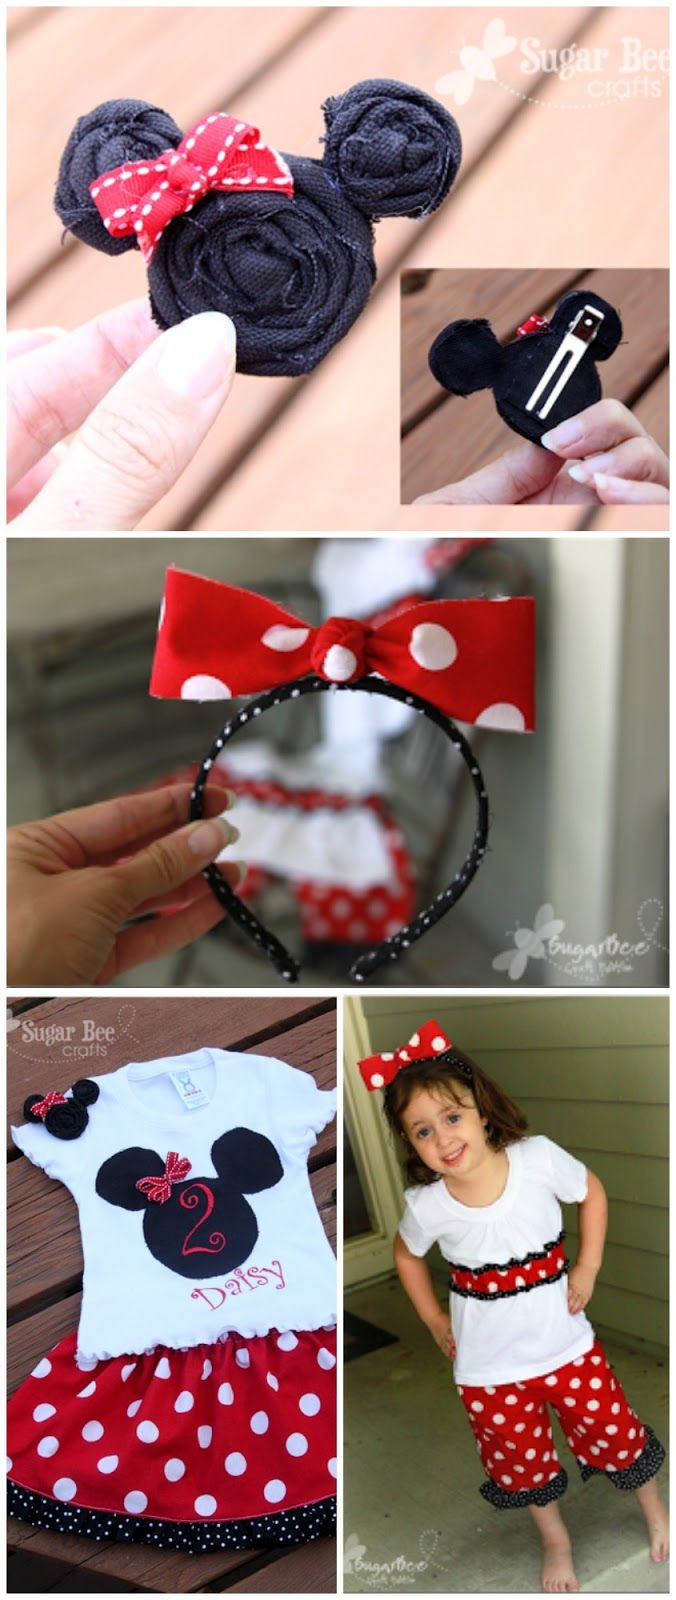 Whip up a fun and whimsical Minnie Mouse outfit with hair accessories for back to school!